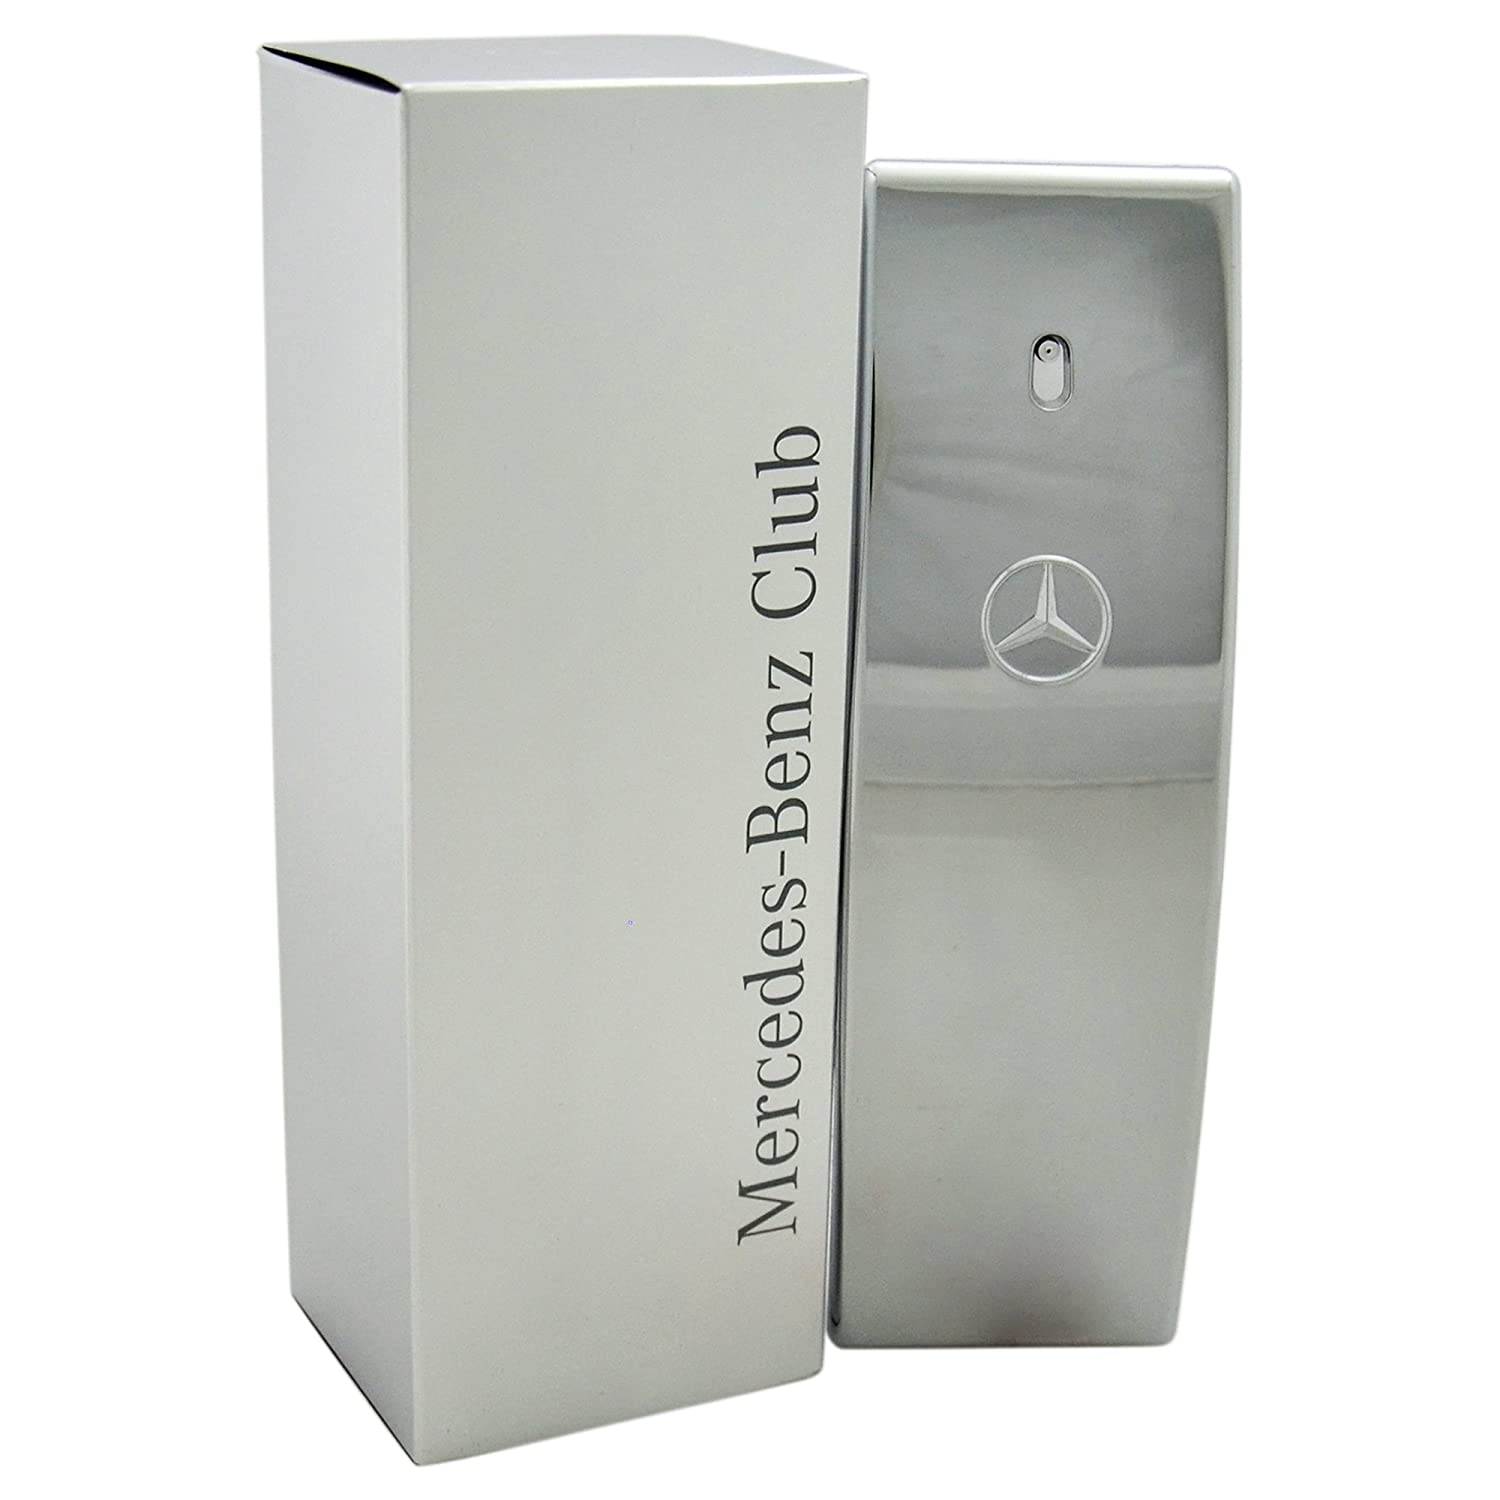 Mercedes-Benz EDT Spray Club for Men - 3.4 oz PerfumeWorldWide Inc. Drop Ship MERCLUM0010002